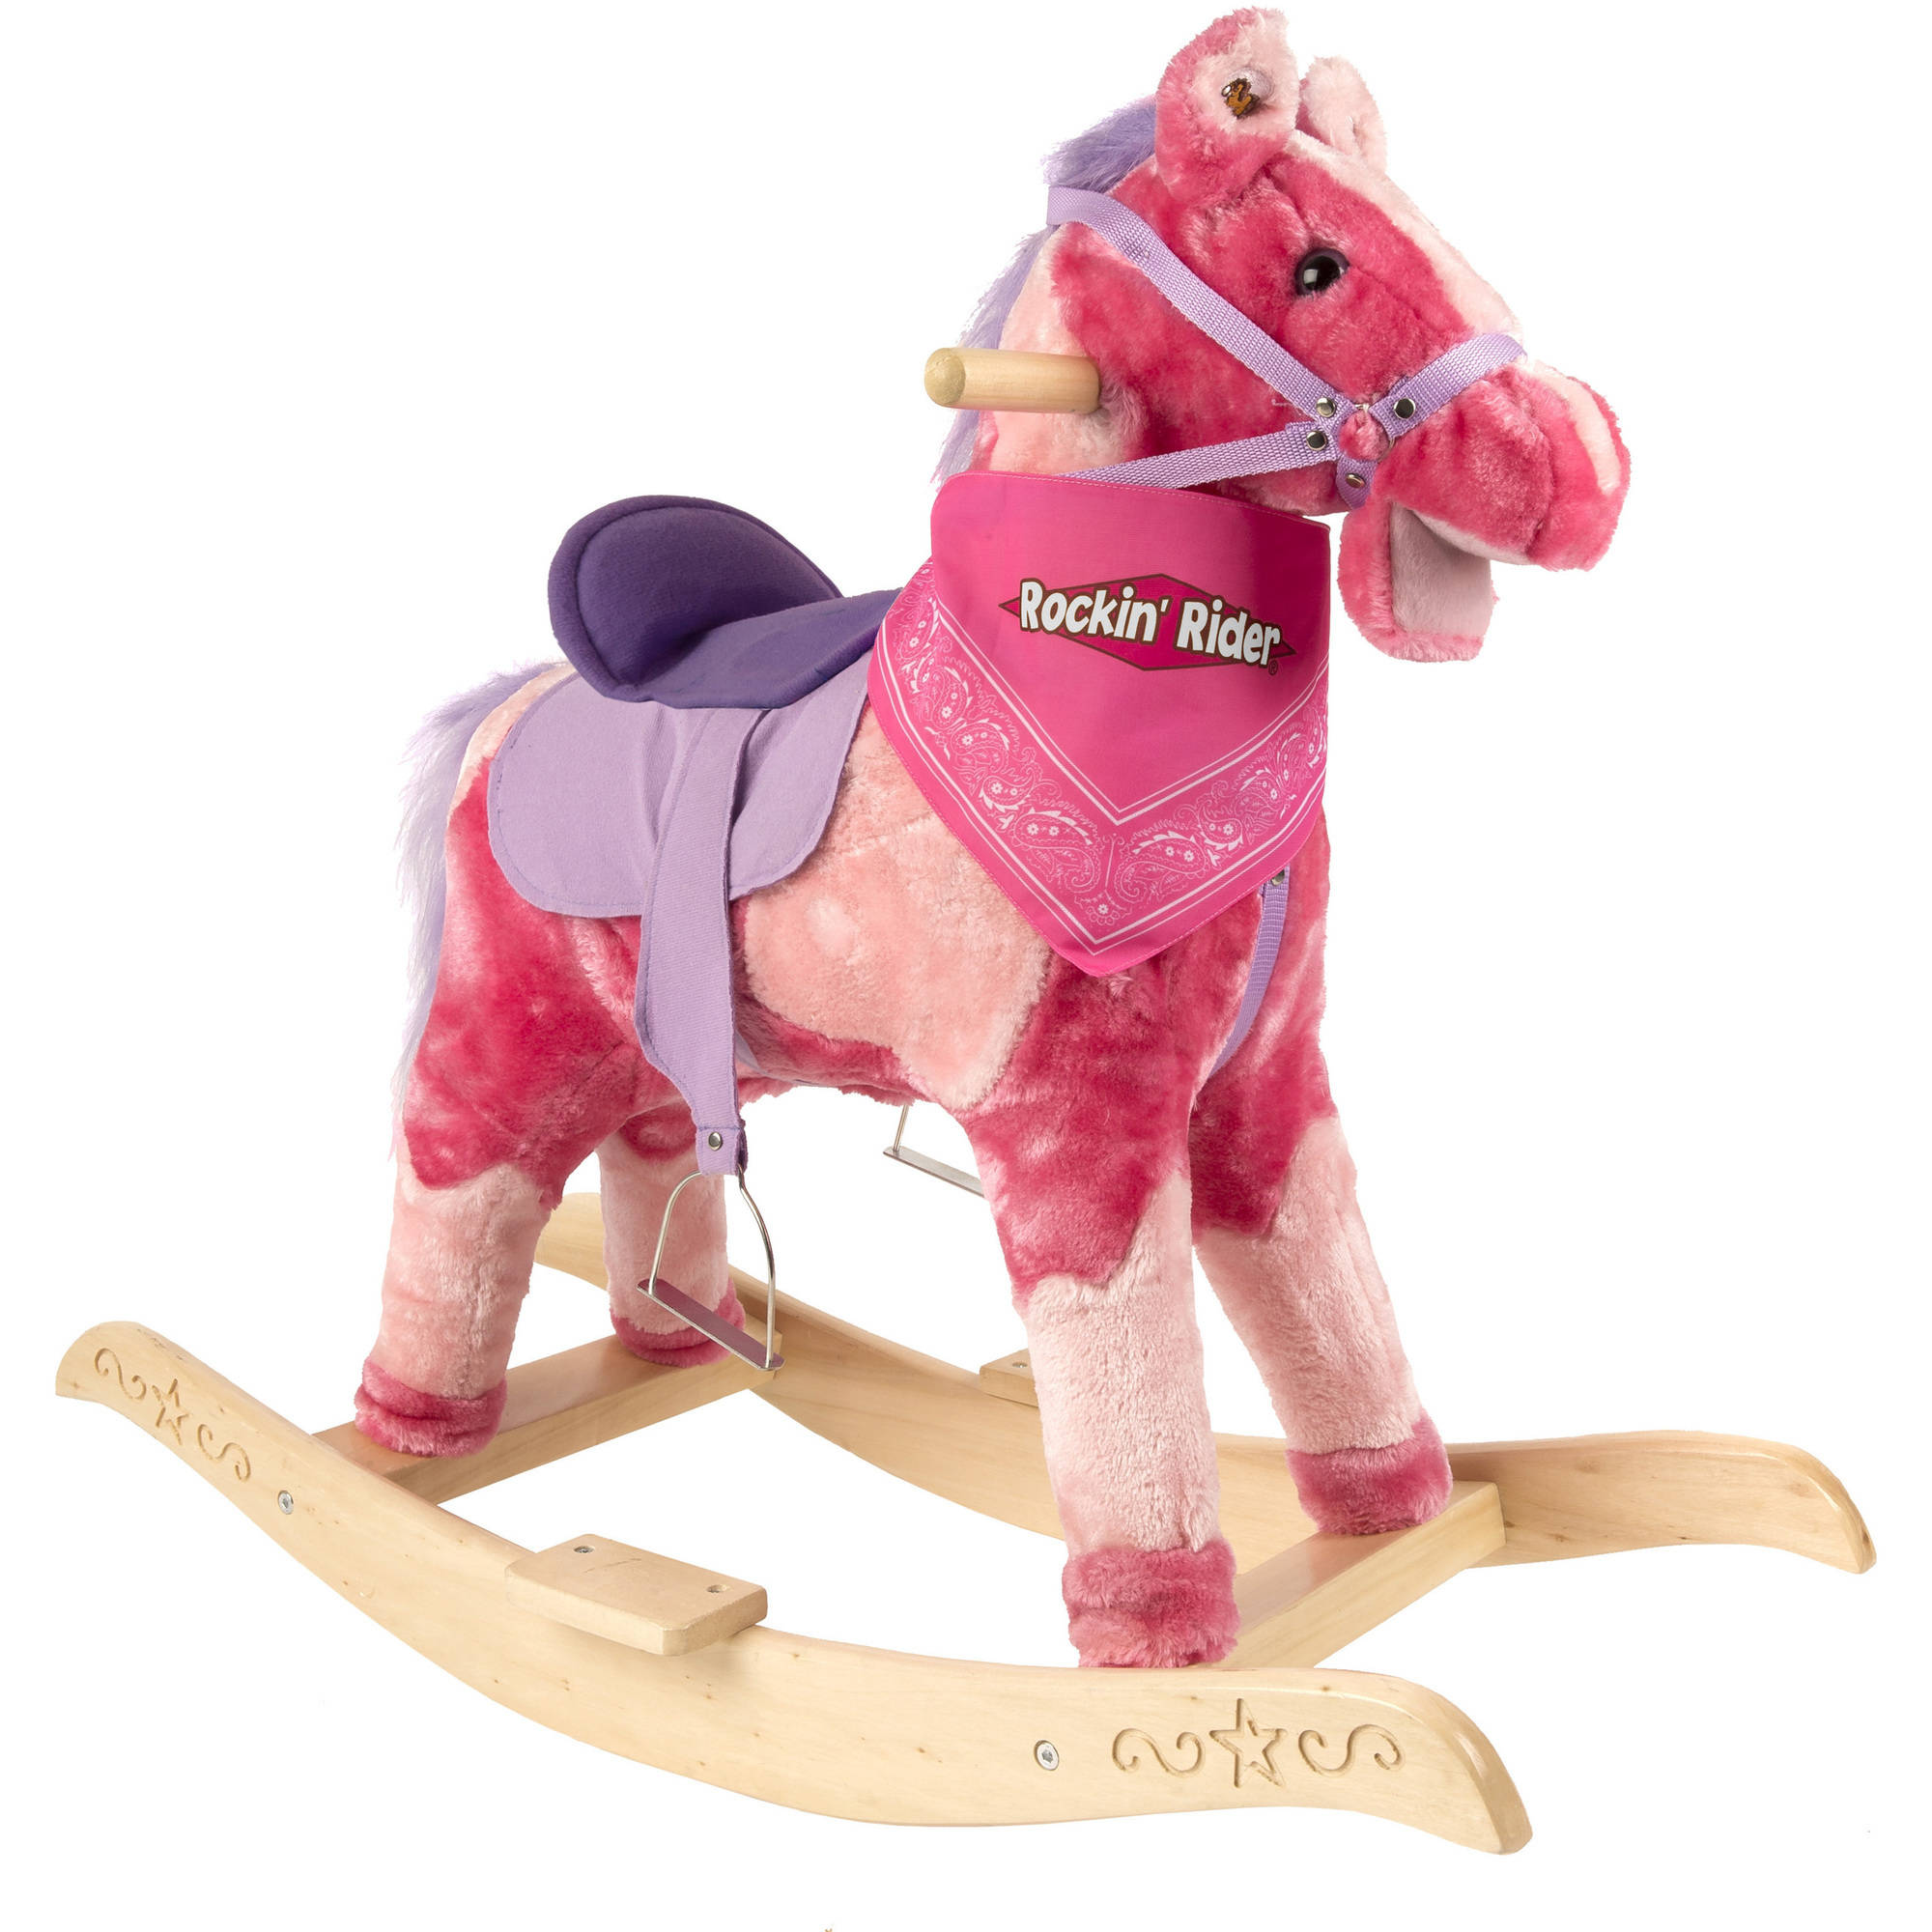 Rockin' Rider Sierra Rocking Horse by Tek Nek Toys International